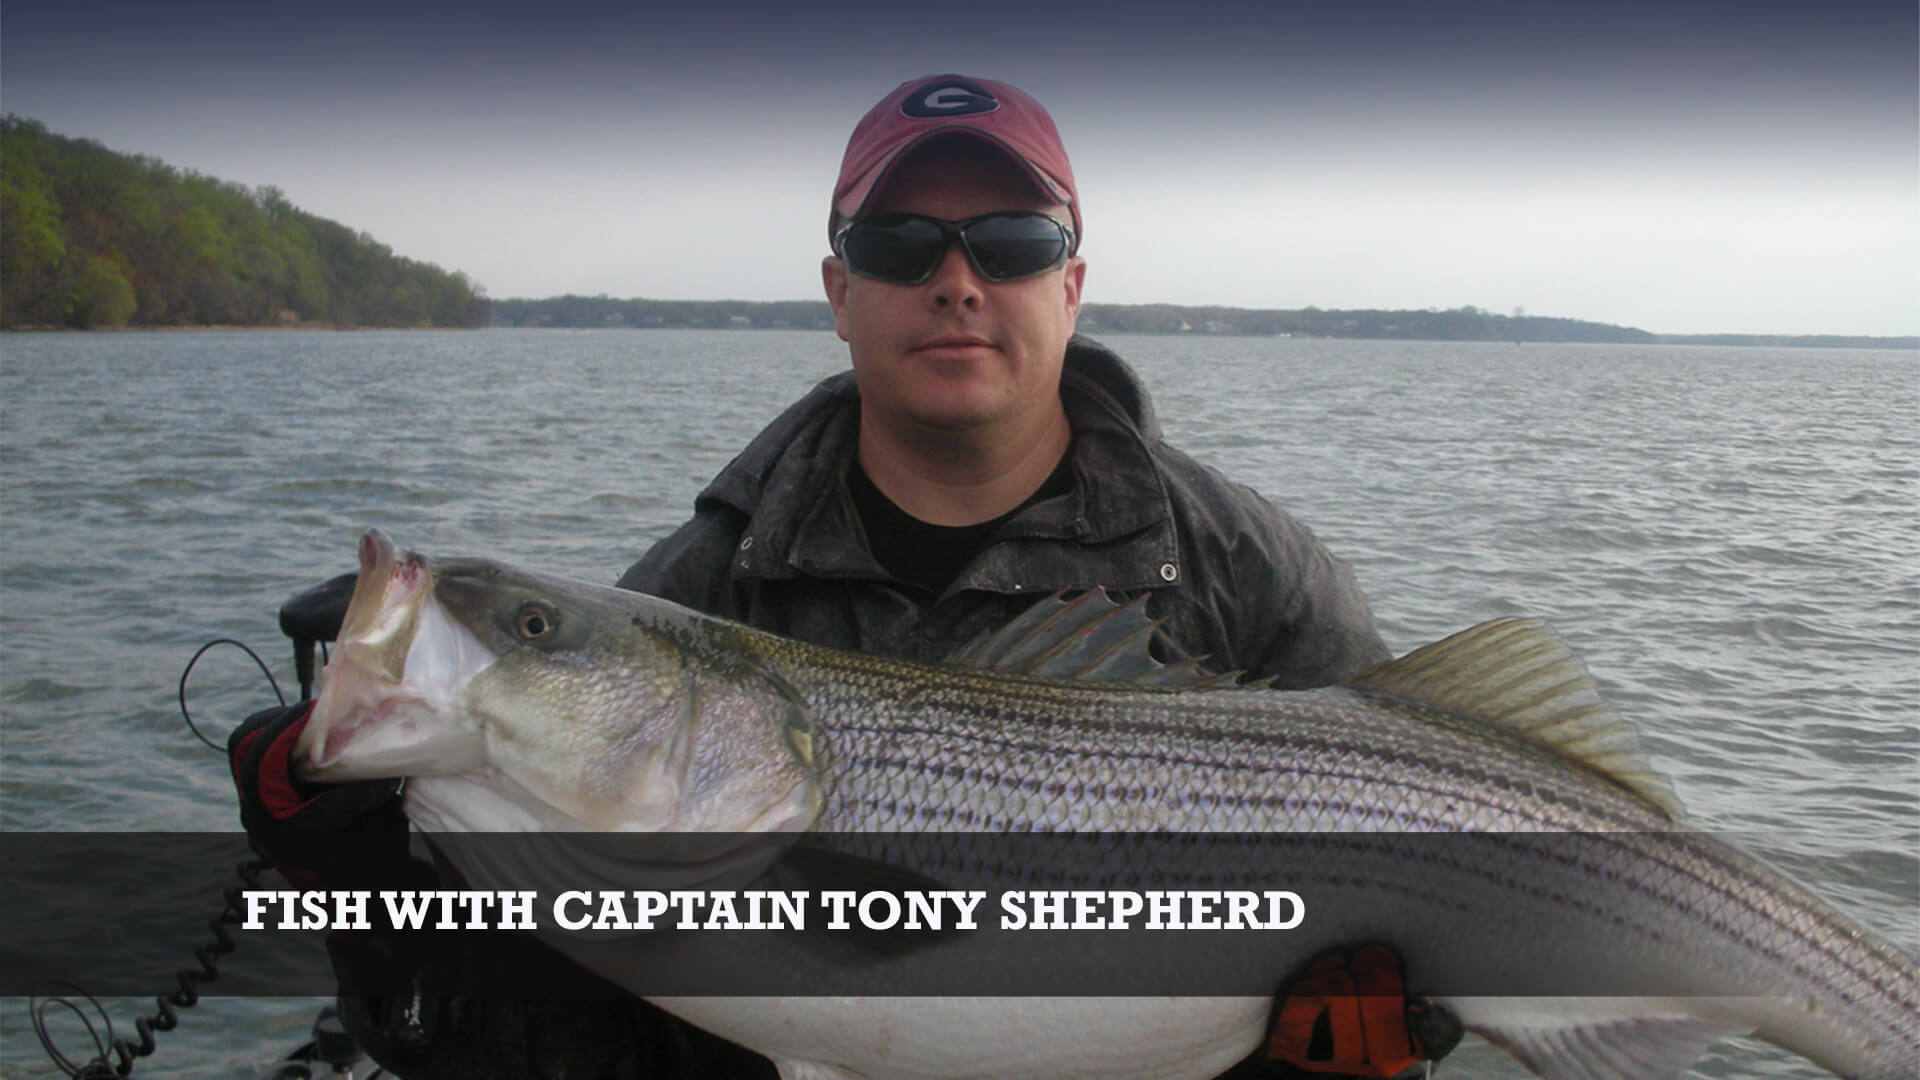 Captain Tony Shepherd striper fishing guide Little River Guide Service Clarks Hill Lake GA Lake Strom Thurmond SC